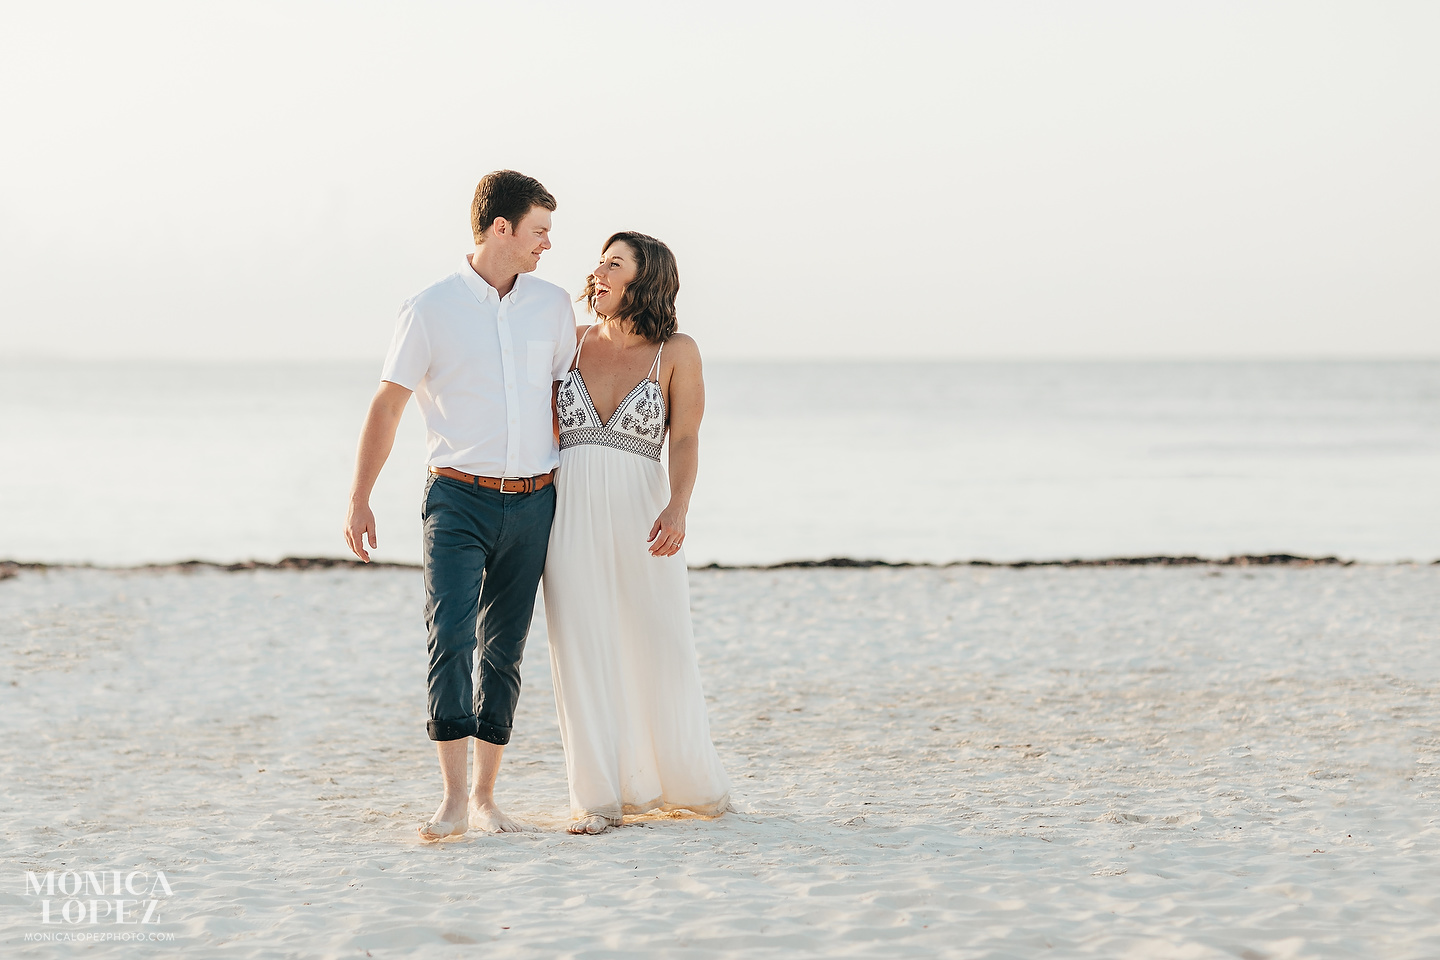 Presidente InterContinental Cancun Engagement Session by Monica Lopez Photography